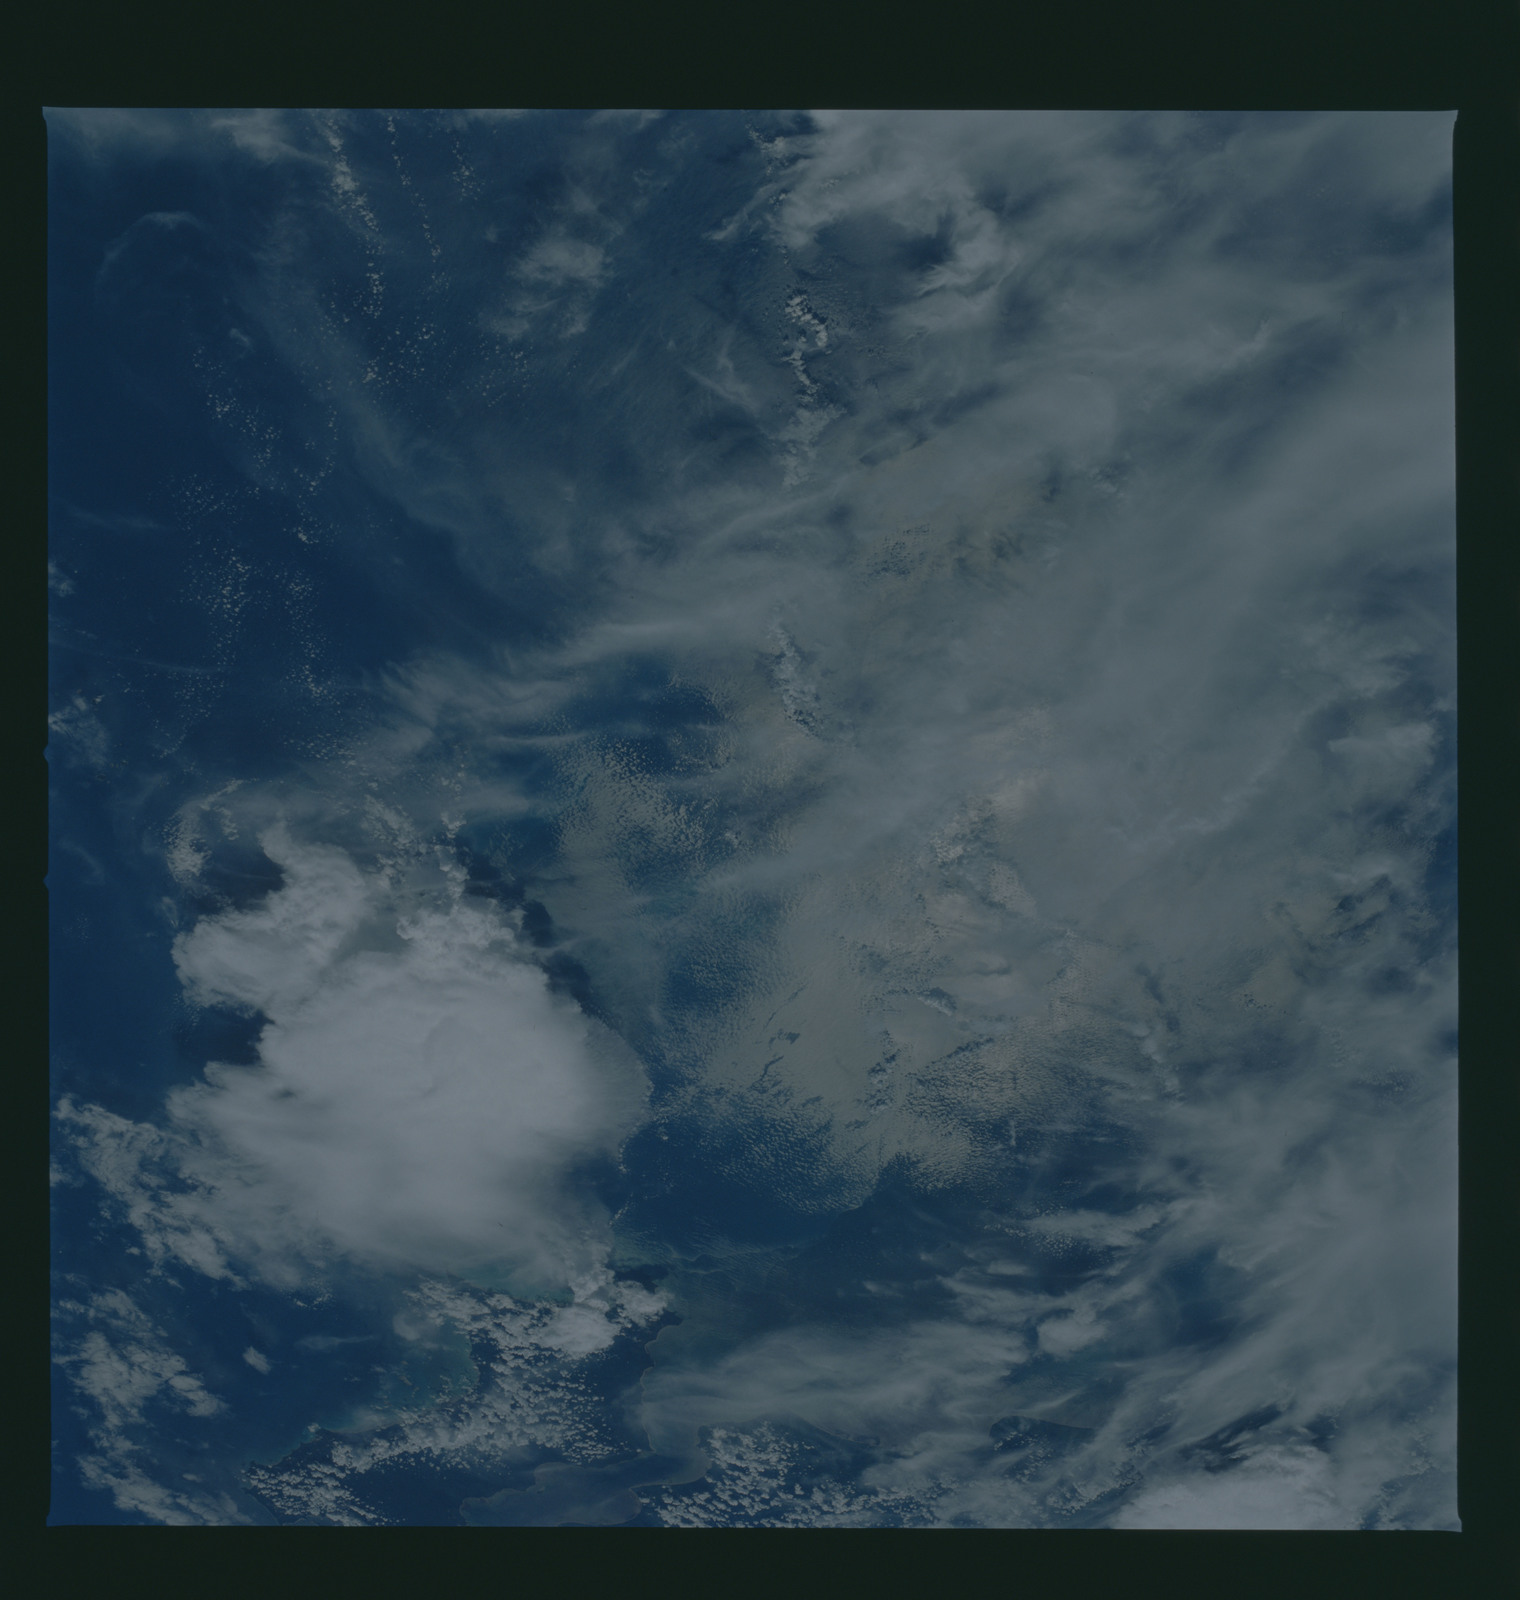 S37-94-067 - STS-037 - Earth observations taken from OV-104 during STS-37 mission